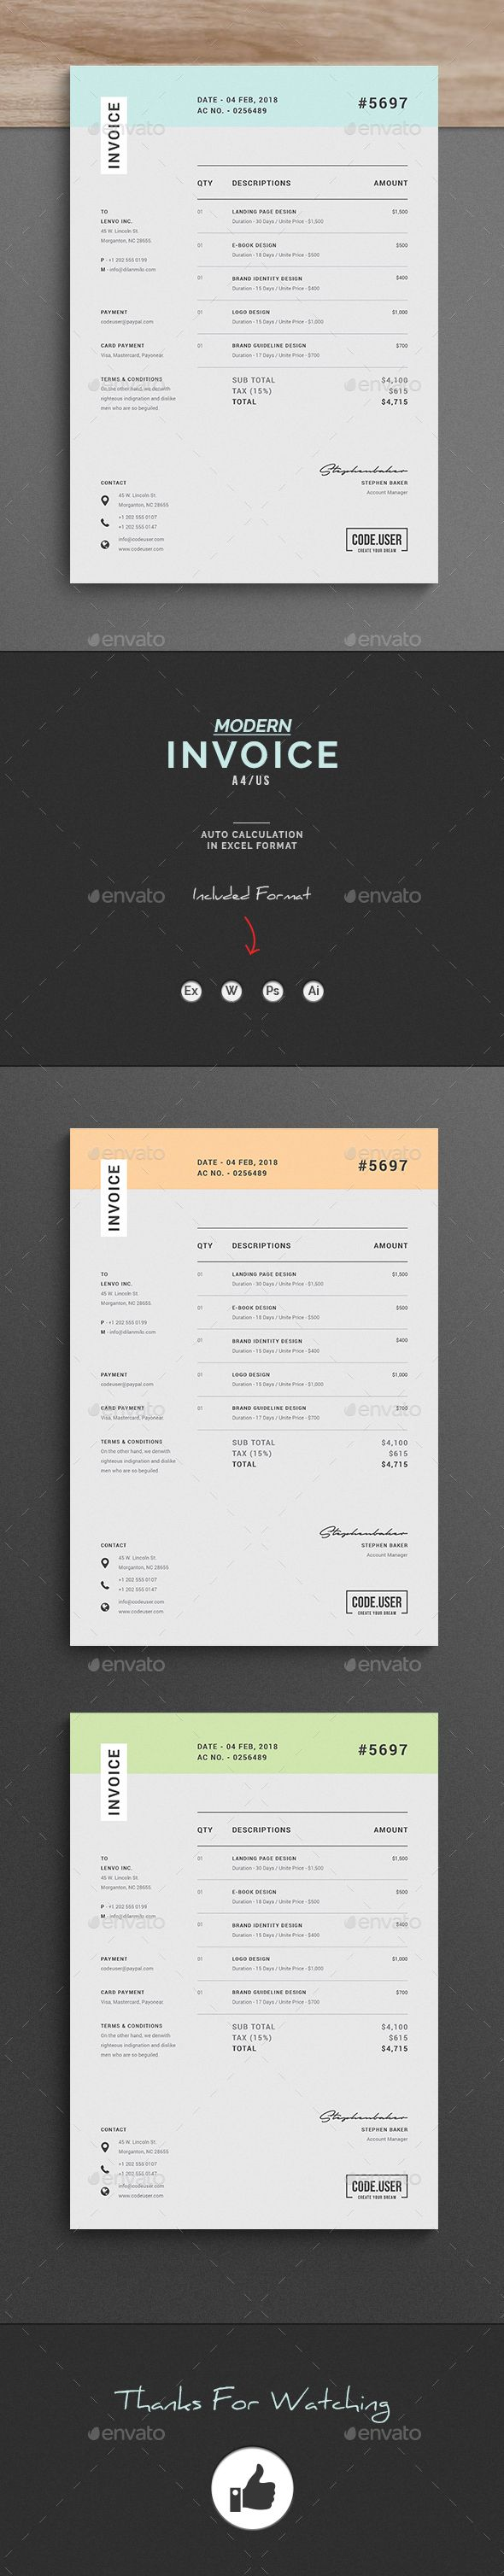 Invoice  Template Form Design And Graphic Design Inspiration